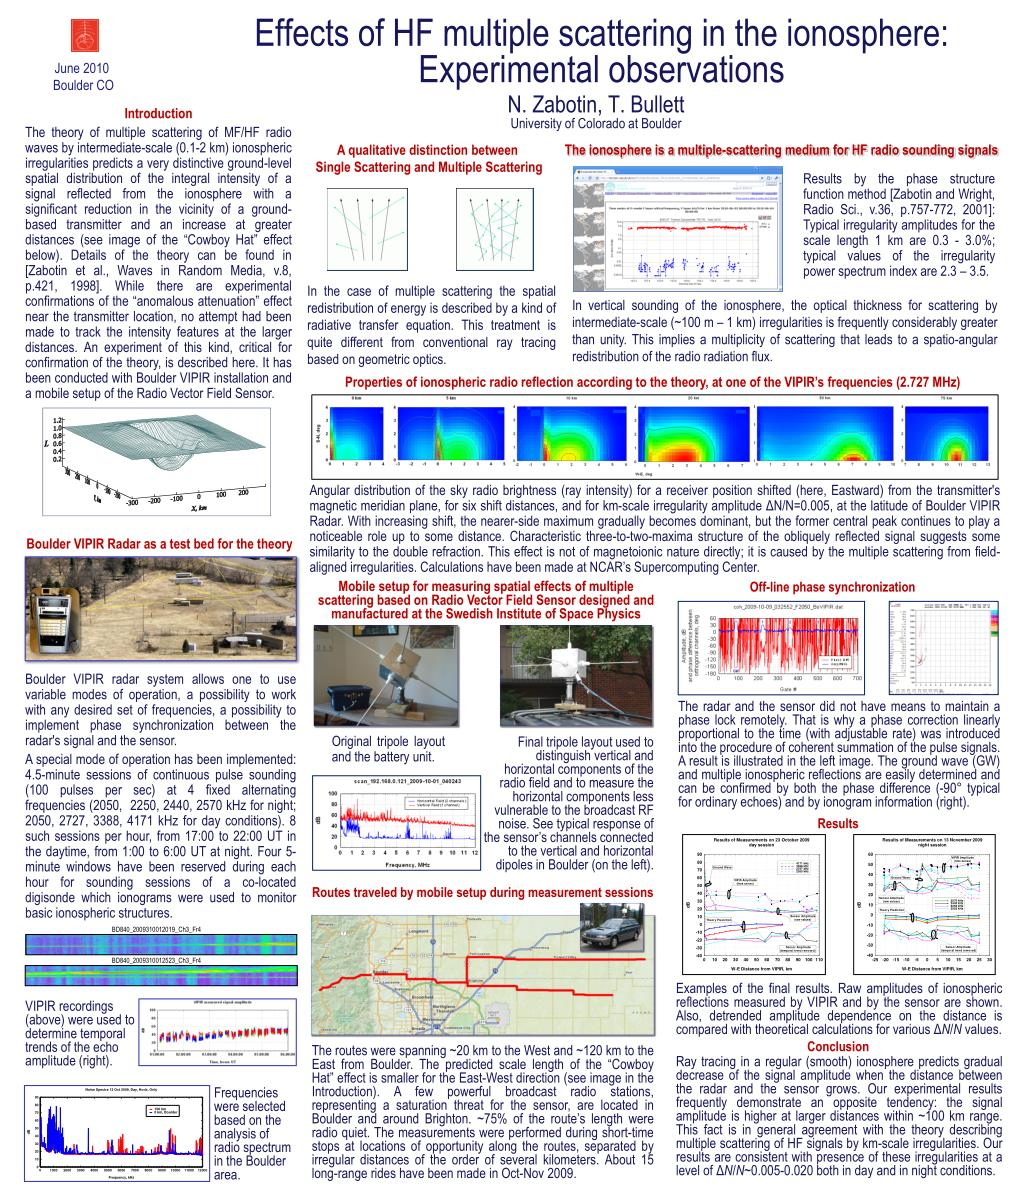 effects of hf multiple scattering in the ionosphere experimental observations